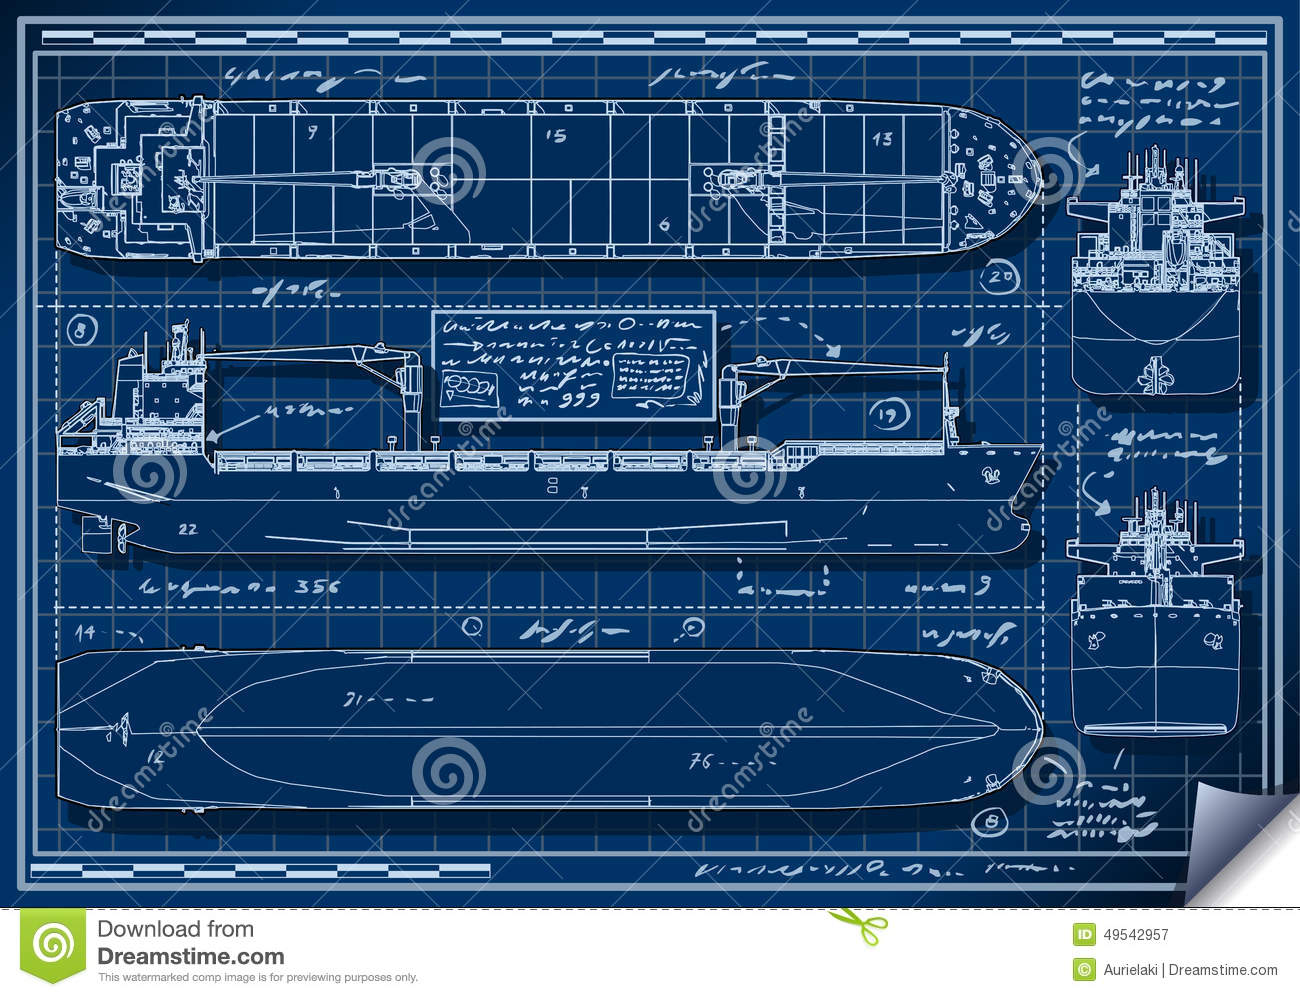 orthogonal blue print cargo ship detailed illustration illustration saved eps color space rgb 49542957 orthogonal blue print of a cargo ship stock vector illustration of